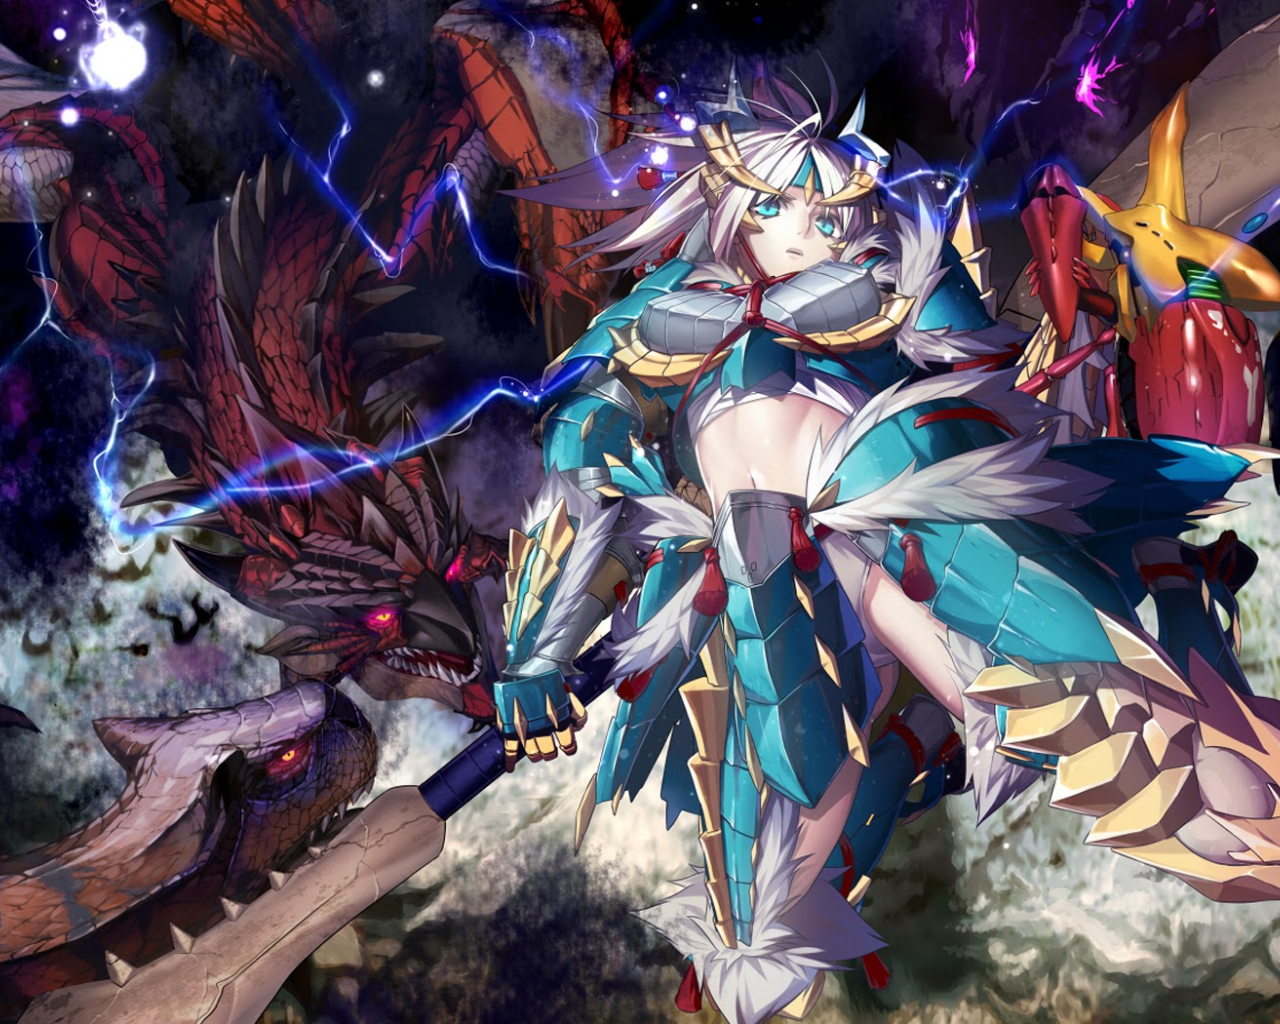 Free Download Anime Girl Monster Hunter Dragon Armor Weapon Hd Wallpaper 1680x1050 For Your Desktop Mobile Tablet Explore 71 Anime Dragon Wallpaper Anime Dragon Wallpaper Dragon Backgrounds Dragon Wallpapers The classic hunter look in monster hunter world is the stylish leather look of the hunter outfit. free download anime girl monster hunter